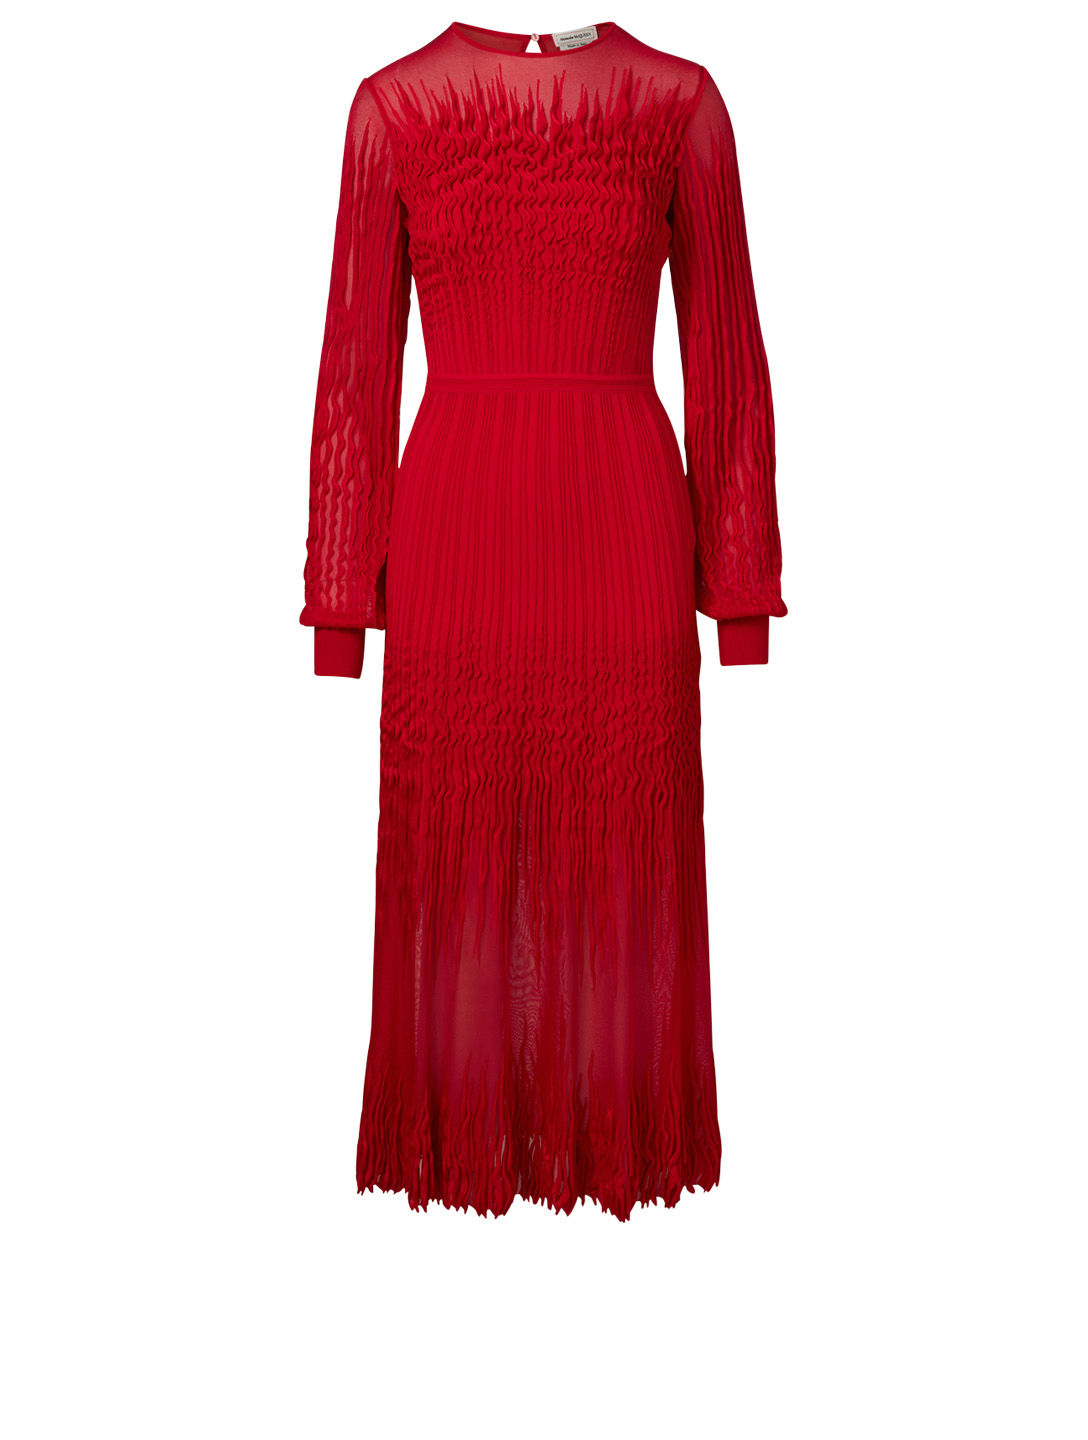 ALEXANDER MCQUEEN Sheer Knit Midi Dress Women's Red